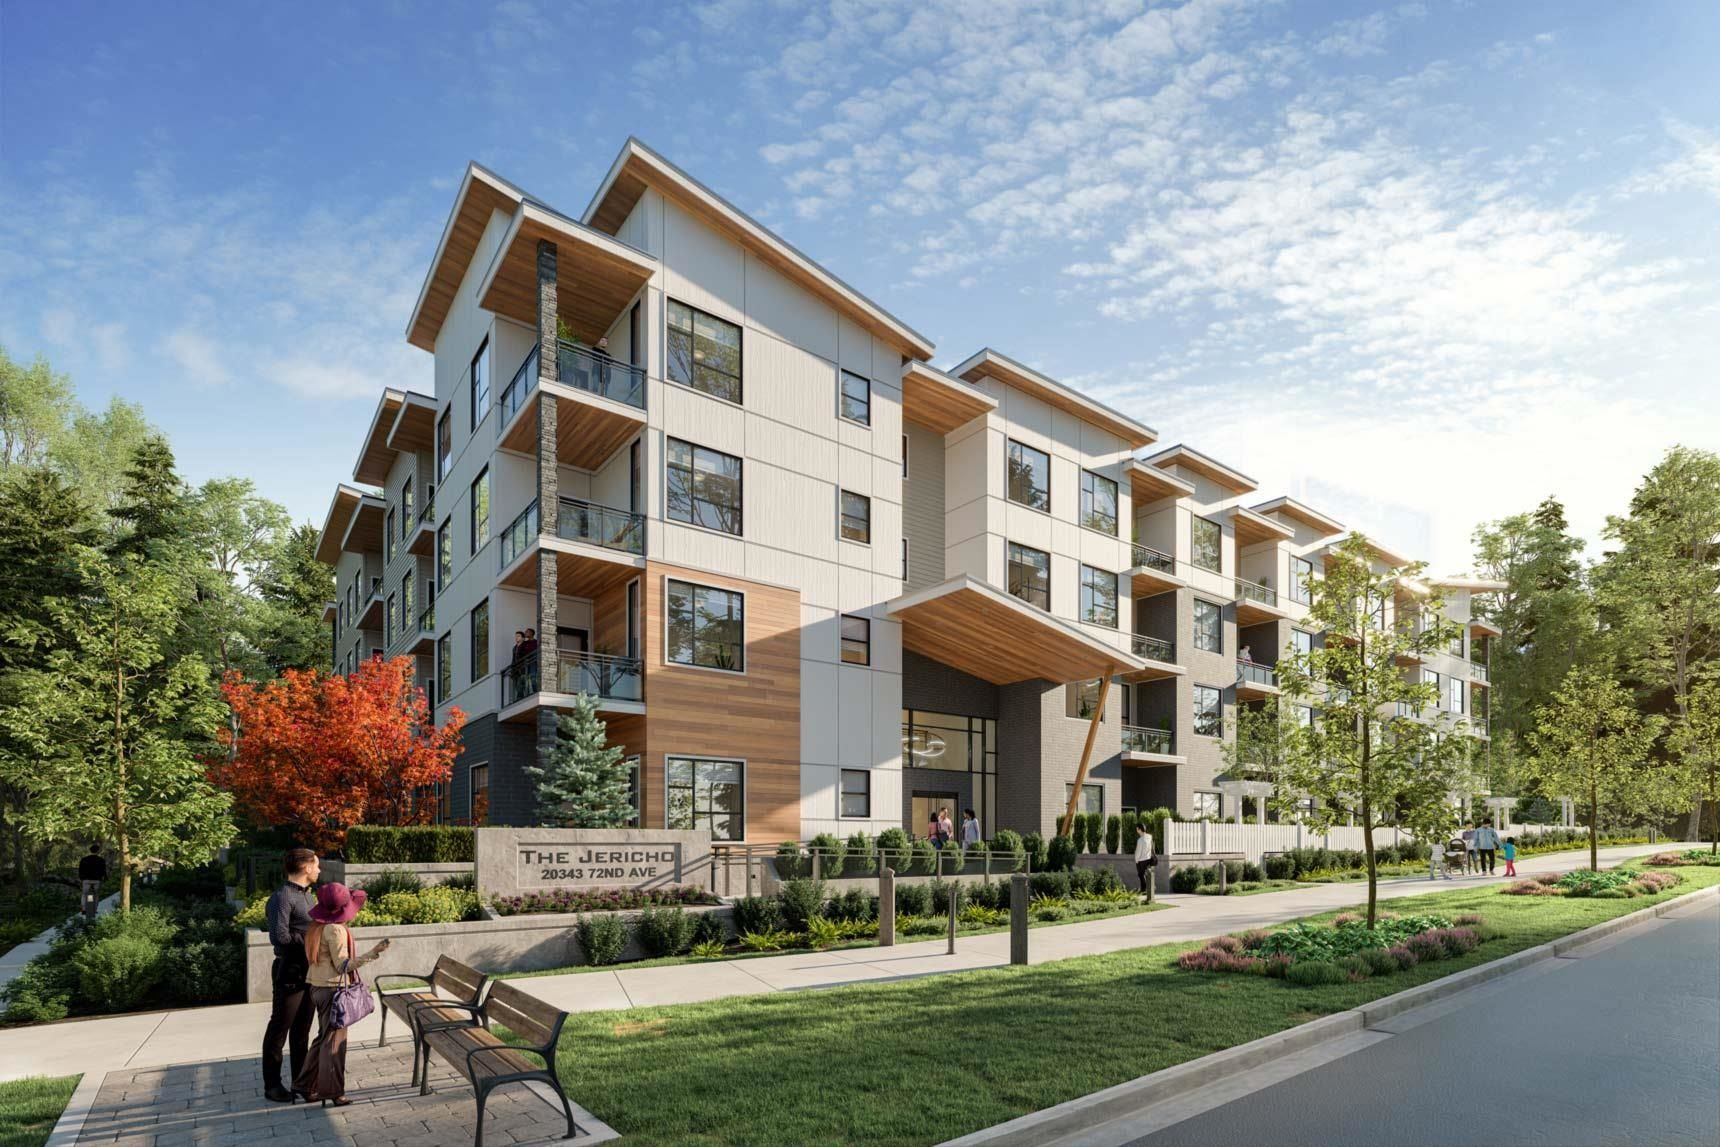 """Main Photo: 305 20343 72 Avenue in Langley: Willoughby Heights Condo for sale in """"Jericho"""" : MLS®# R2612295"""